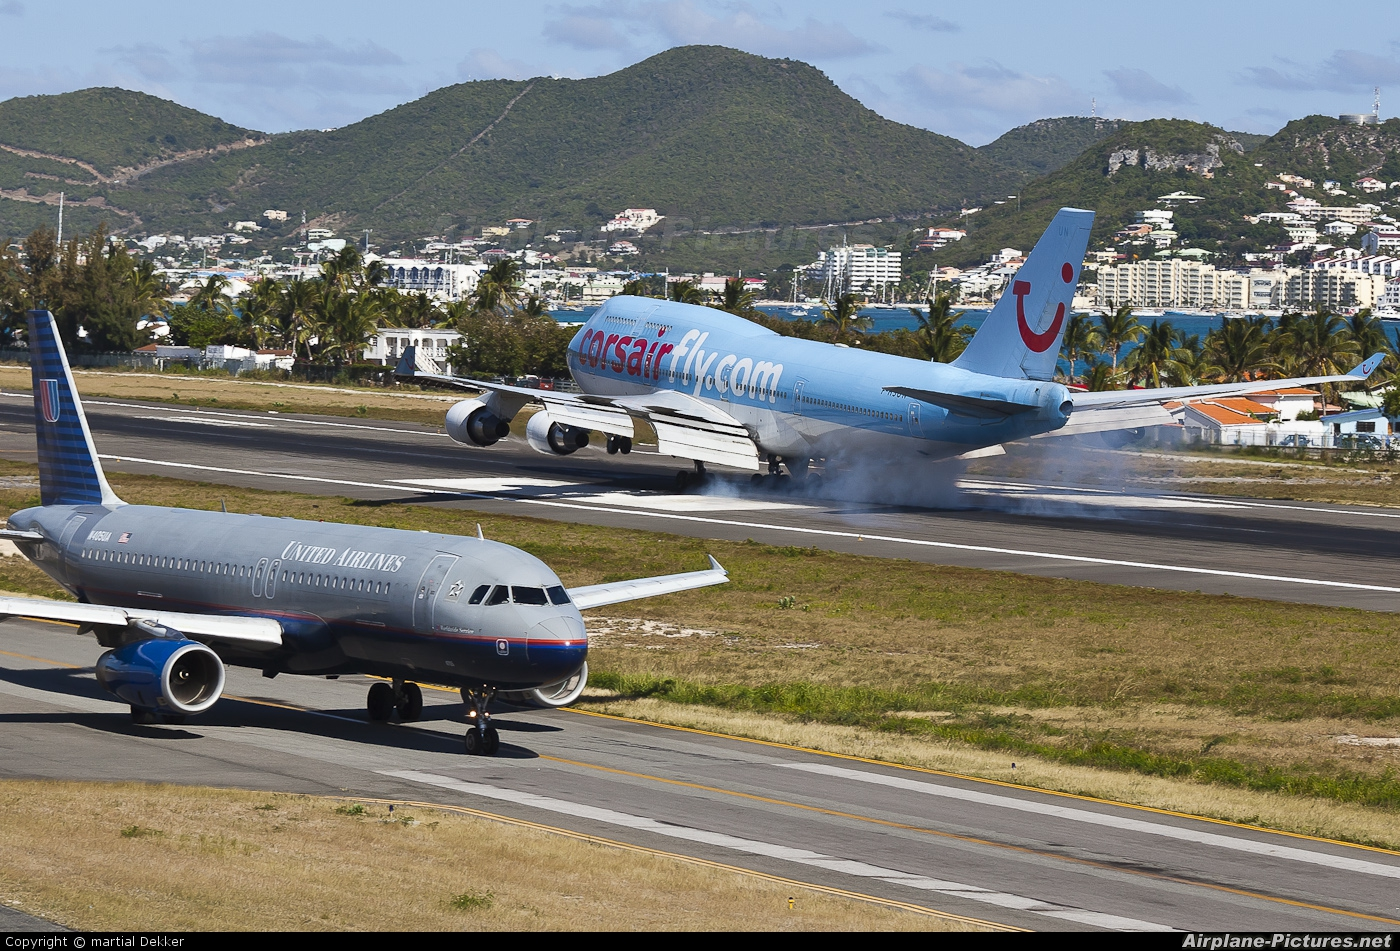 Corsair / Corsair Intl F-HSUN aircraft at Sint Maarten - Princess Juliana Intl